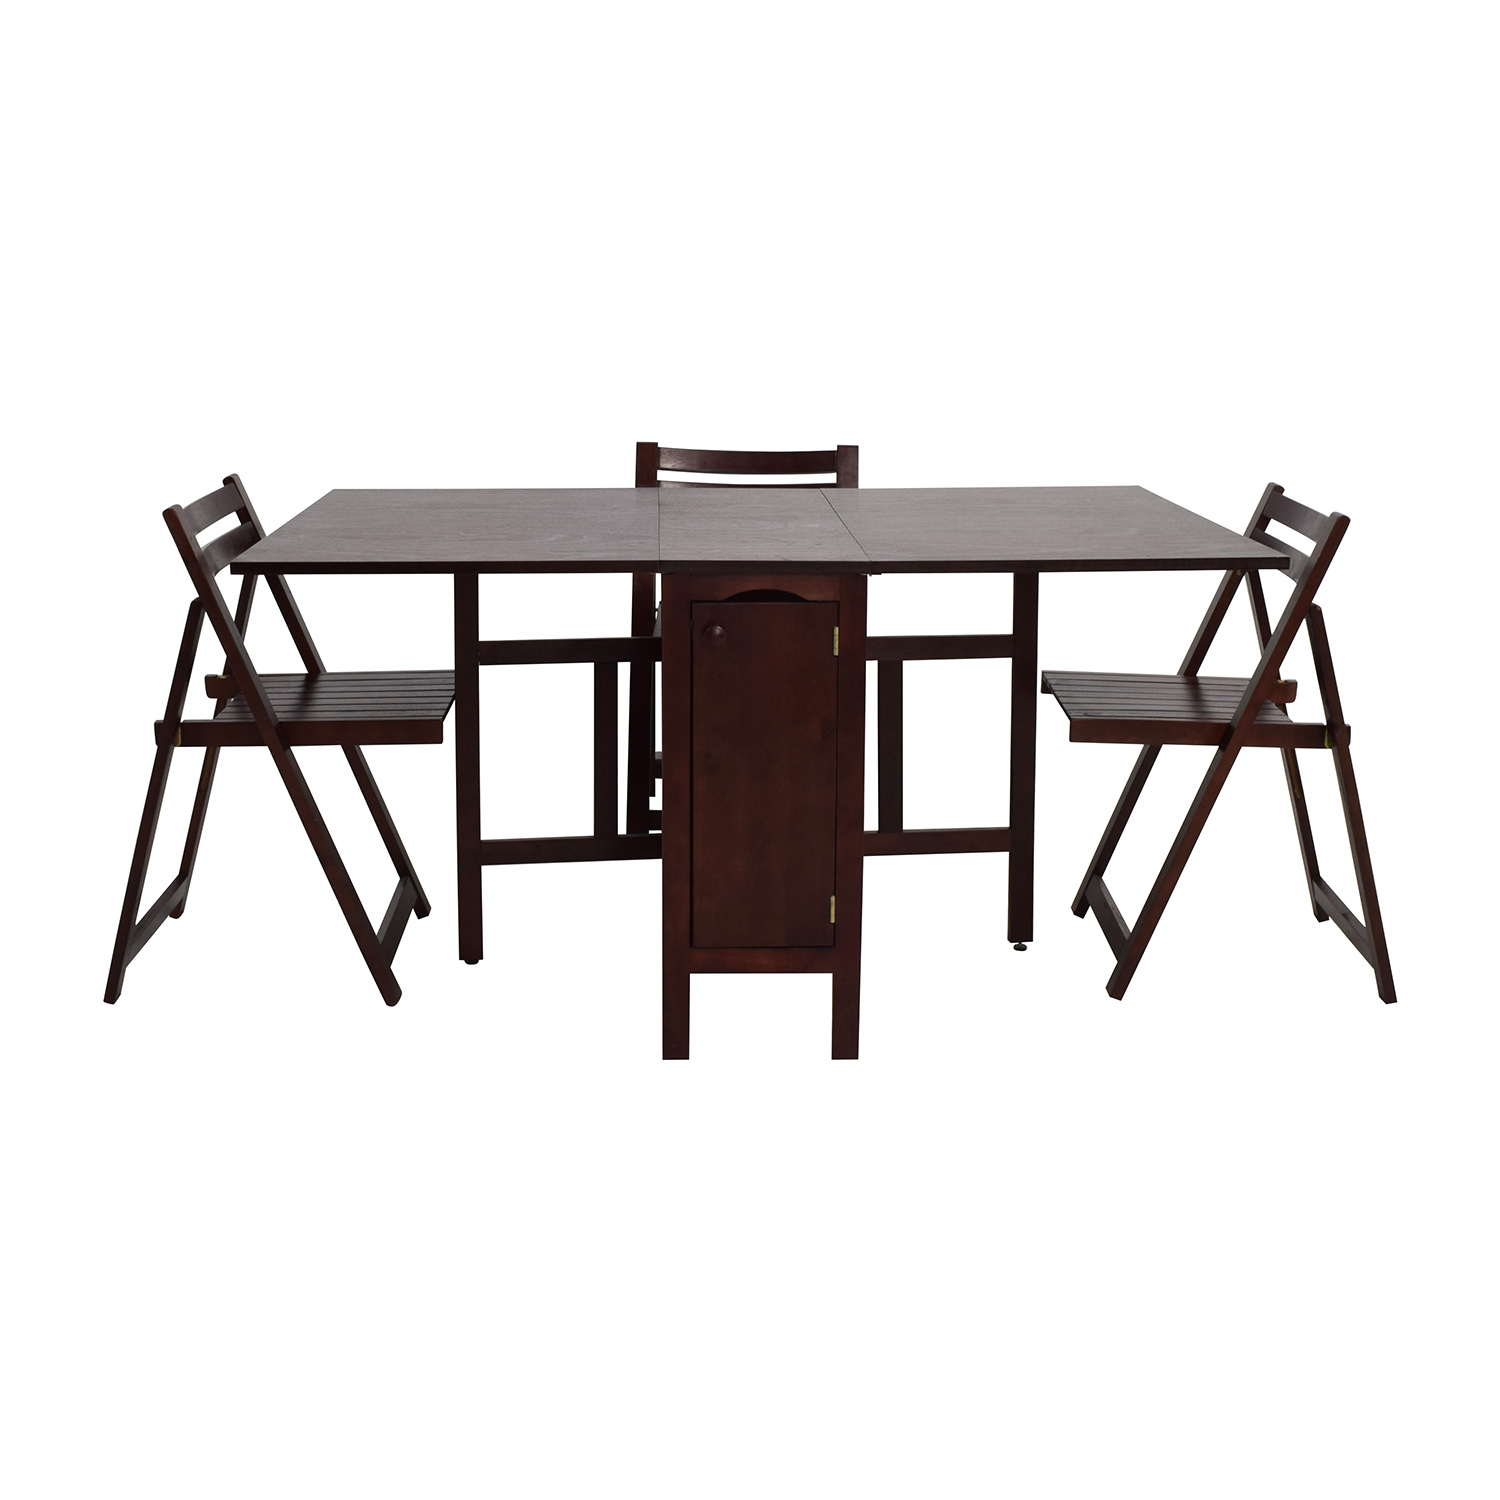 buy Home Depot Foldable Kitchen Table with Folding Chairs online